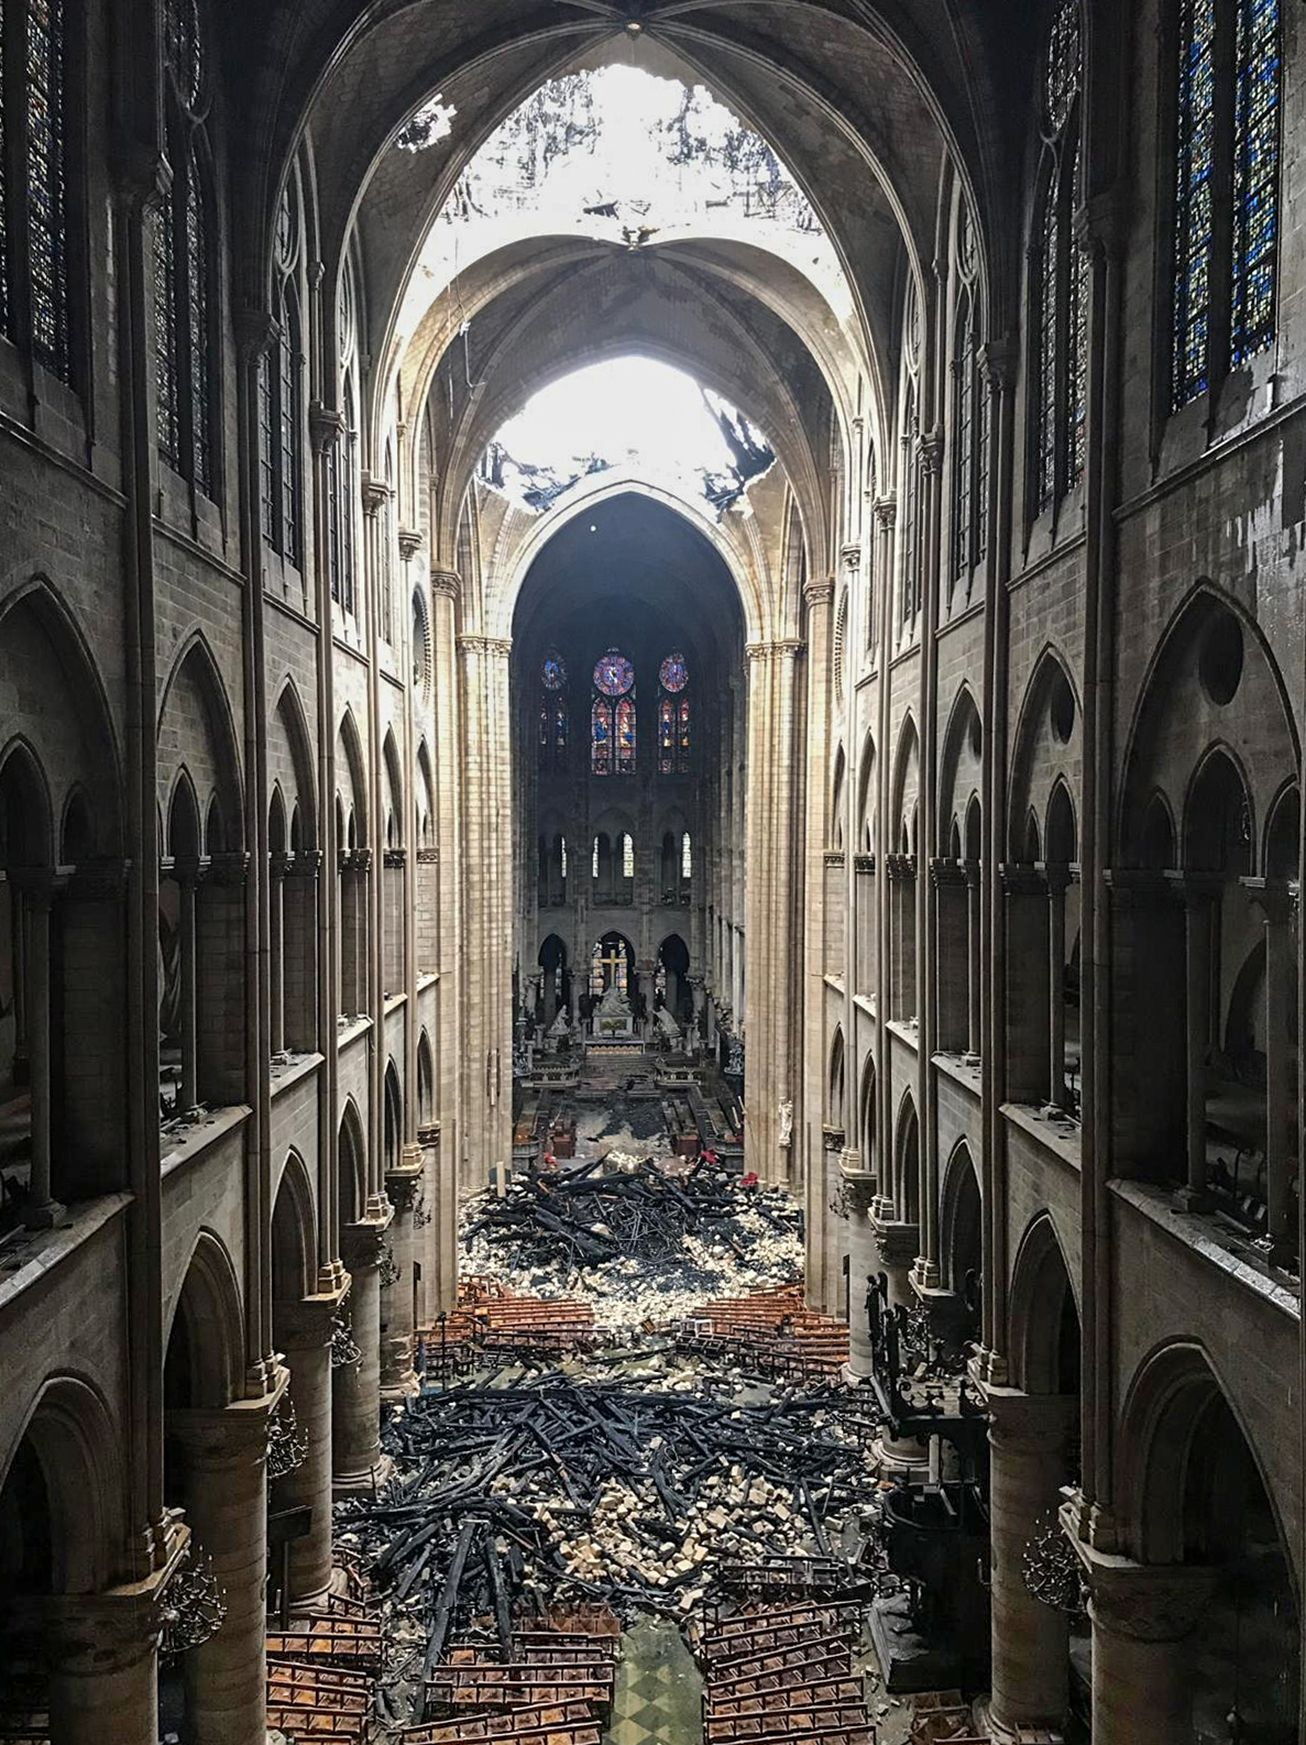 TOPSHOT-FRANCE-FIRE-NOTRE DAME cathedral fire damage day after